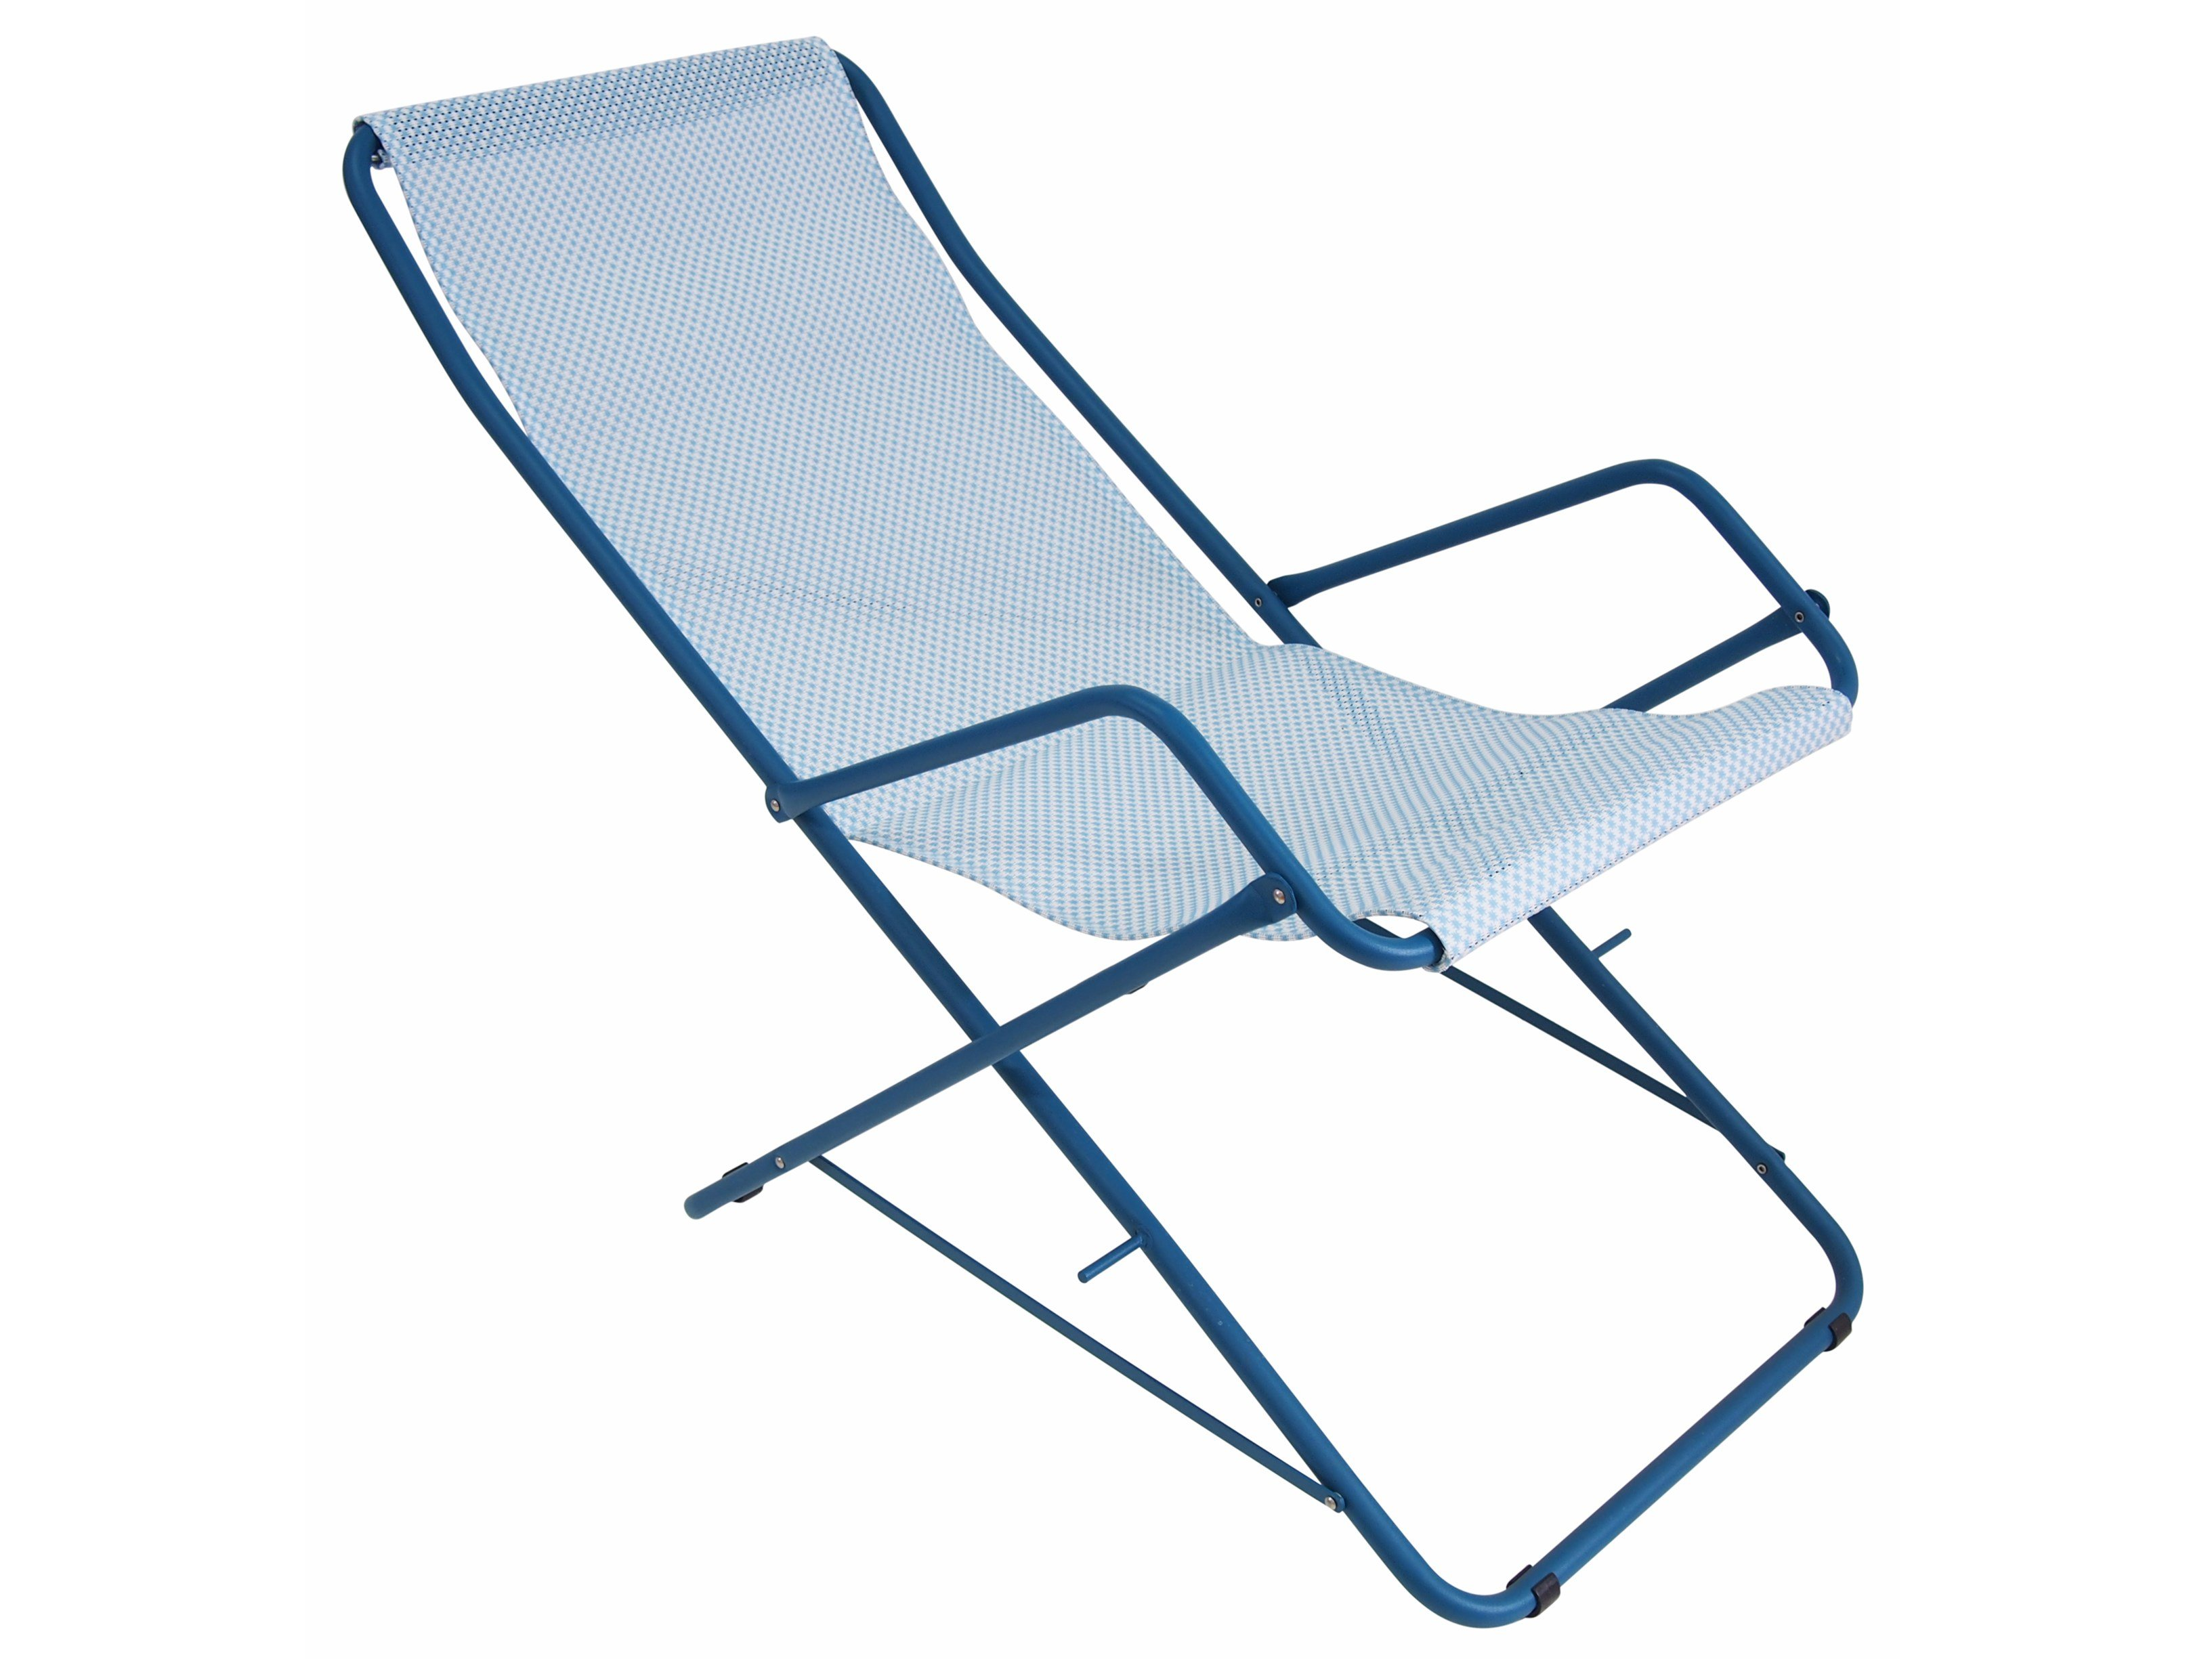 Deck chairs Outdoor furniture